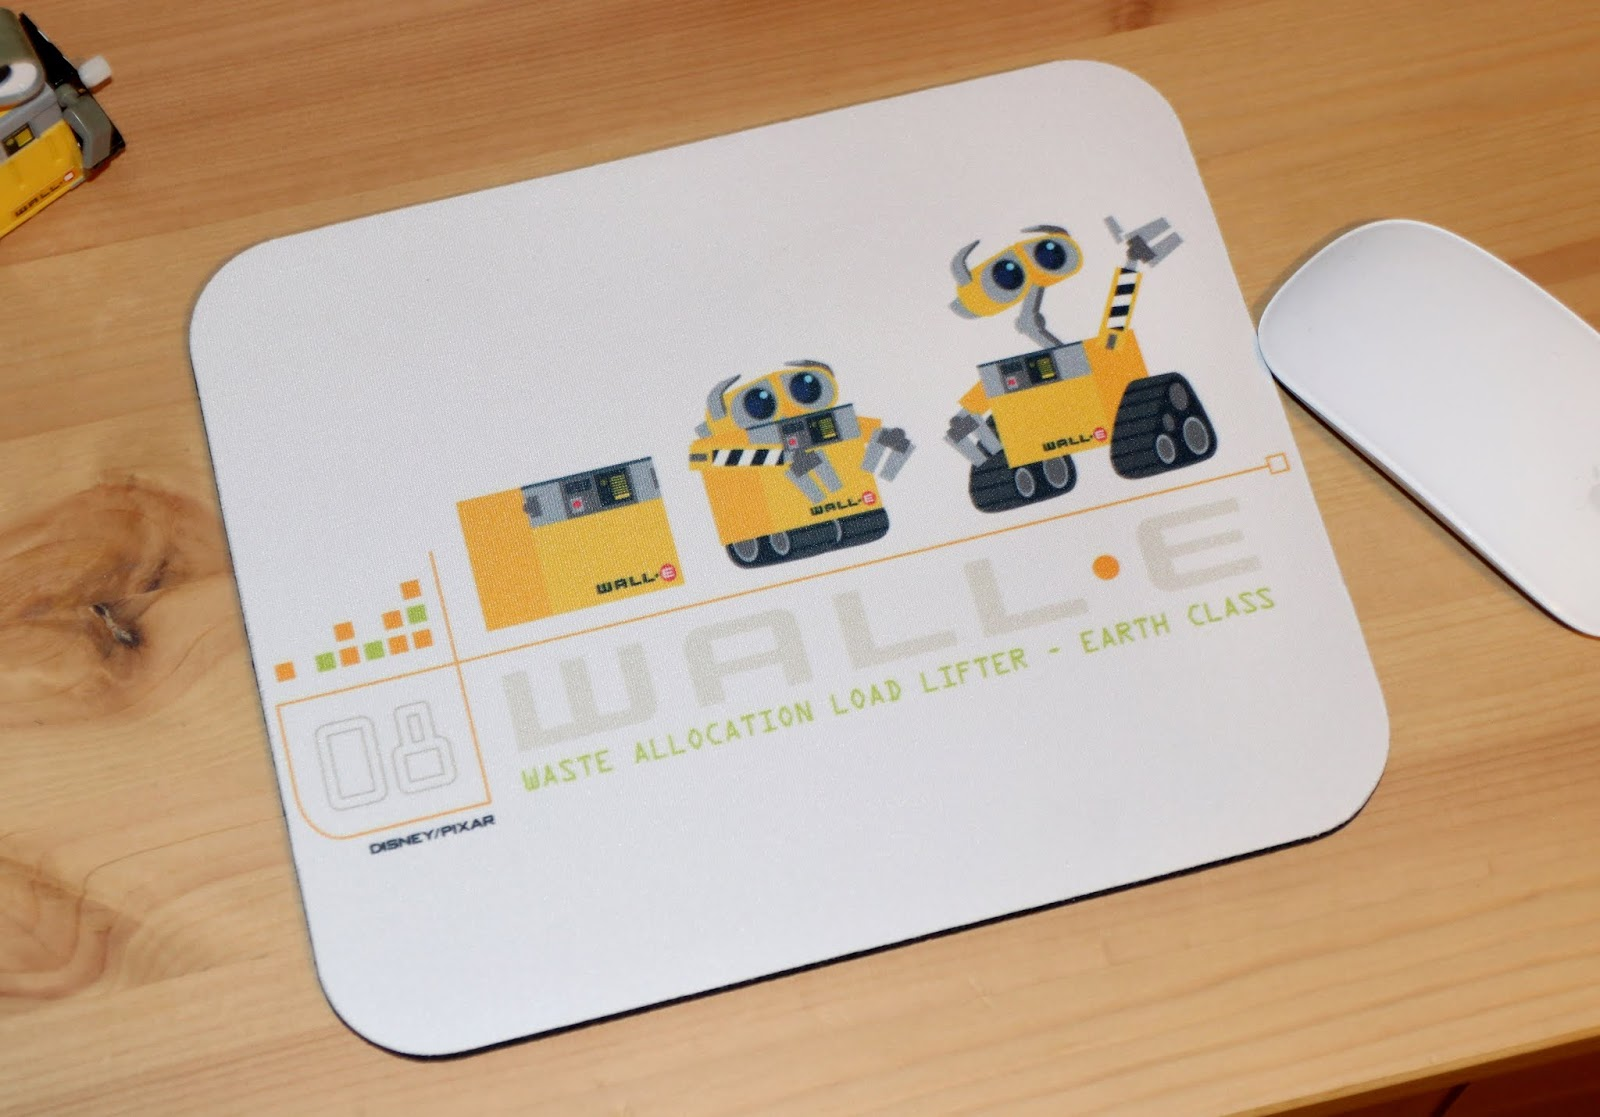 disney pixar wall-e mousepad